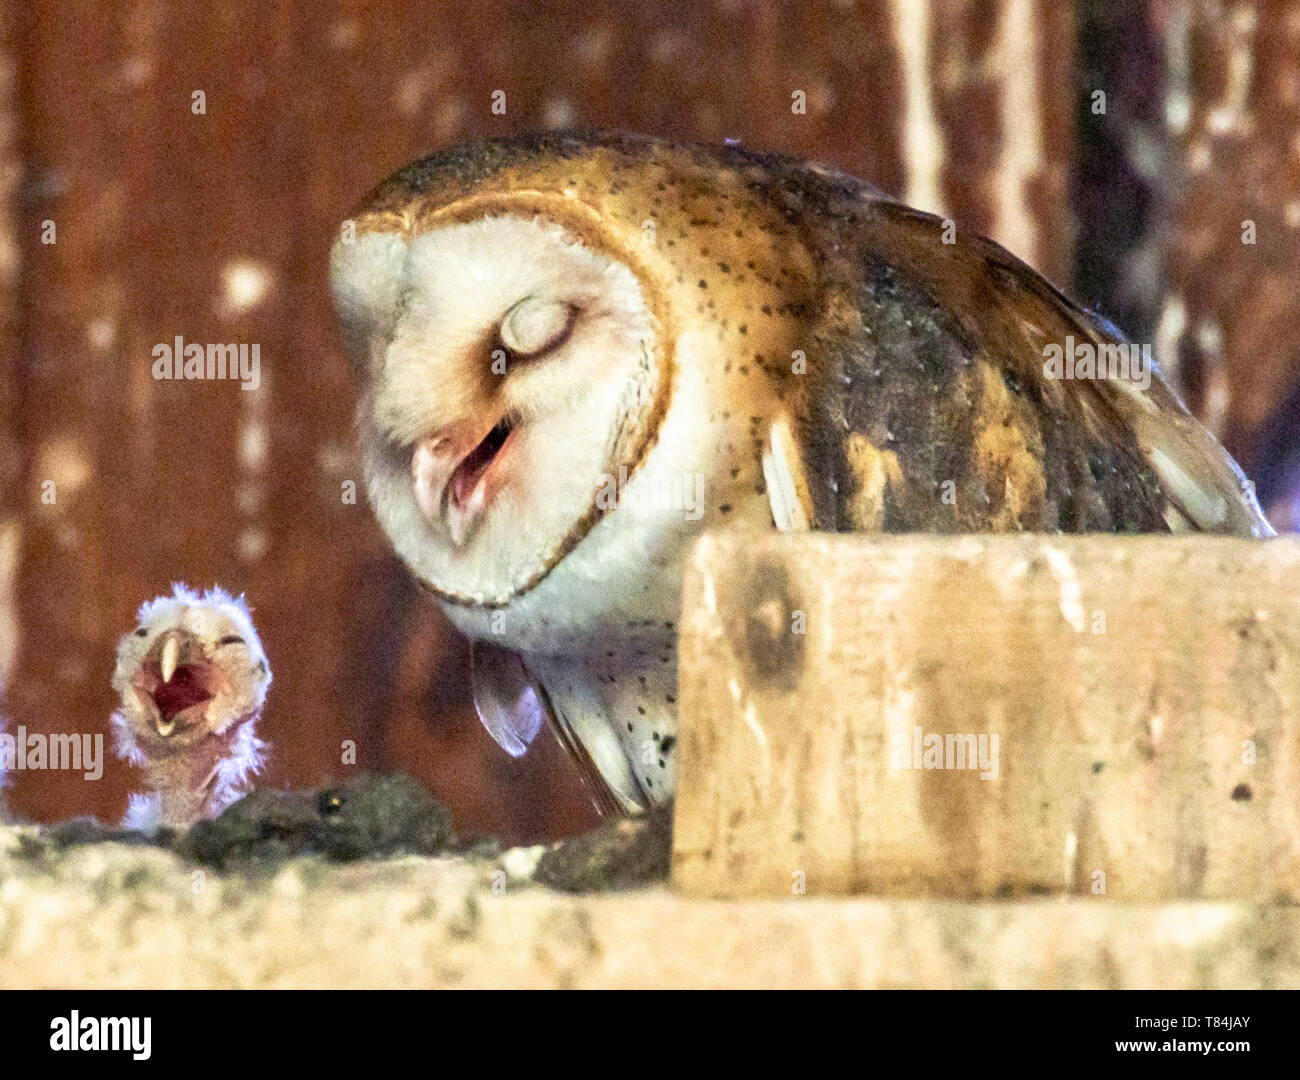 Elkton, OREGON, USA. 10th May, 2019. An adult barn owl and its newly hatched owlet perch in nest box in barn on a farm near Elkton in rural western Oregon. According to barnowltrust.org the female barn owl does all the incubation and the male provides all the food until the young are around 3 weeks old. Credit: Robin Loznak/ZUMA Wire/Alamy Live News Stock Photo